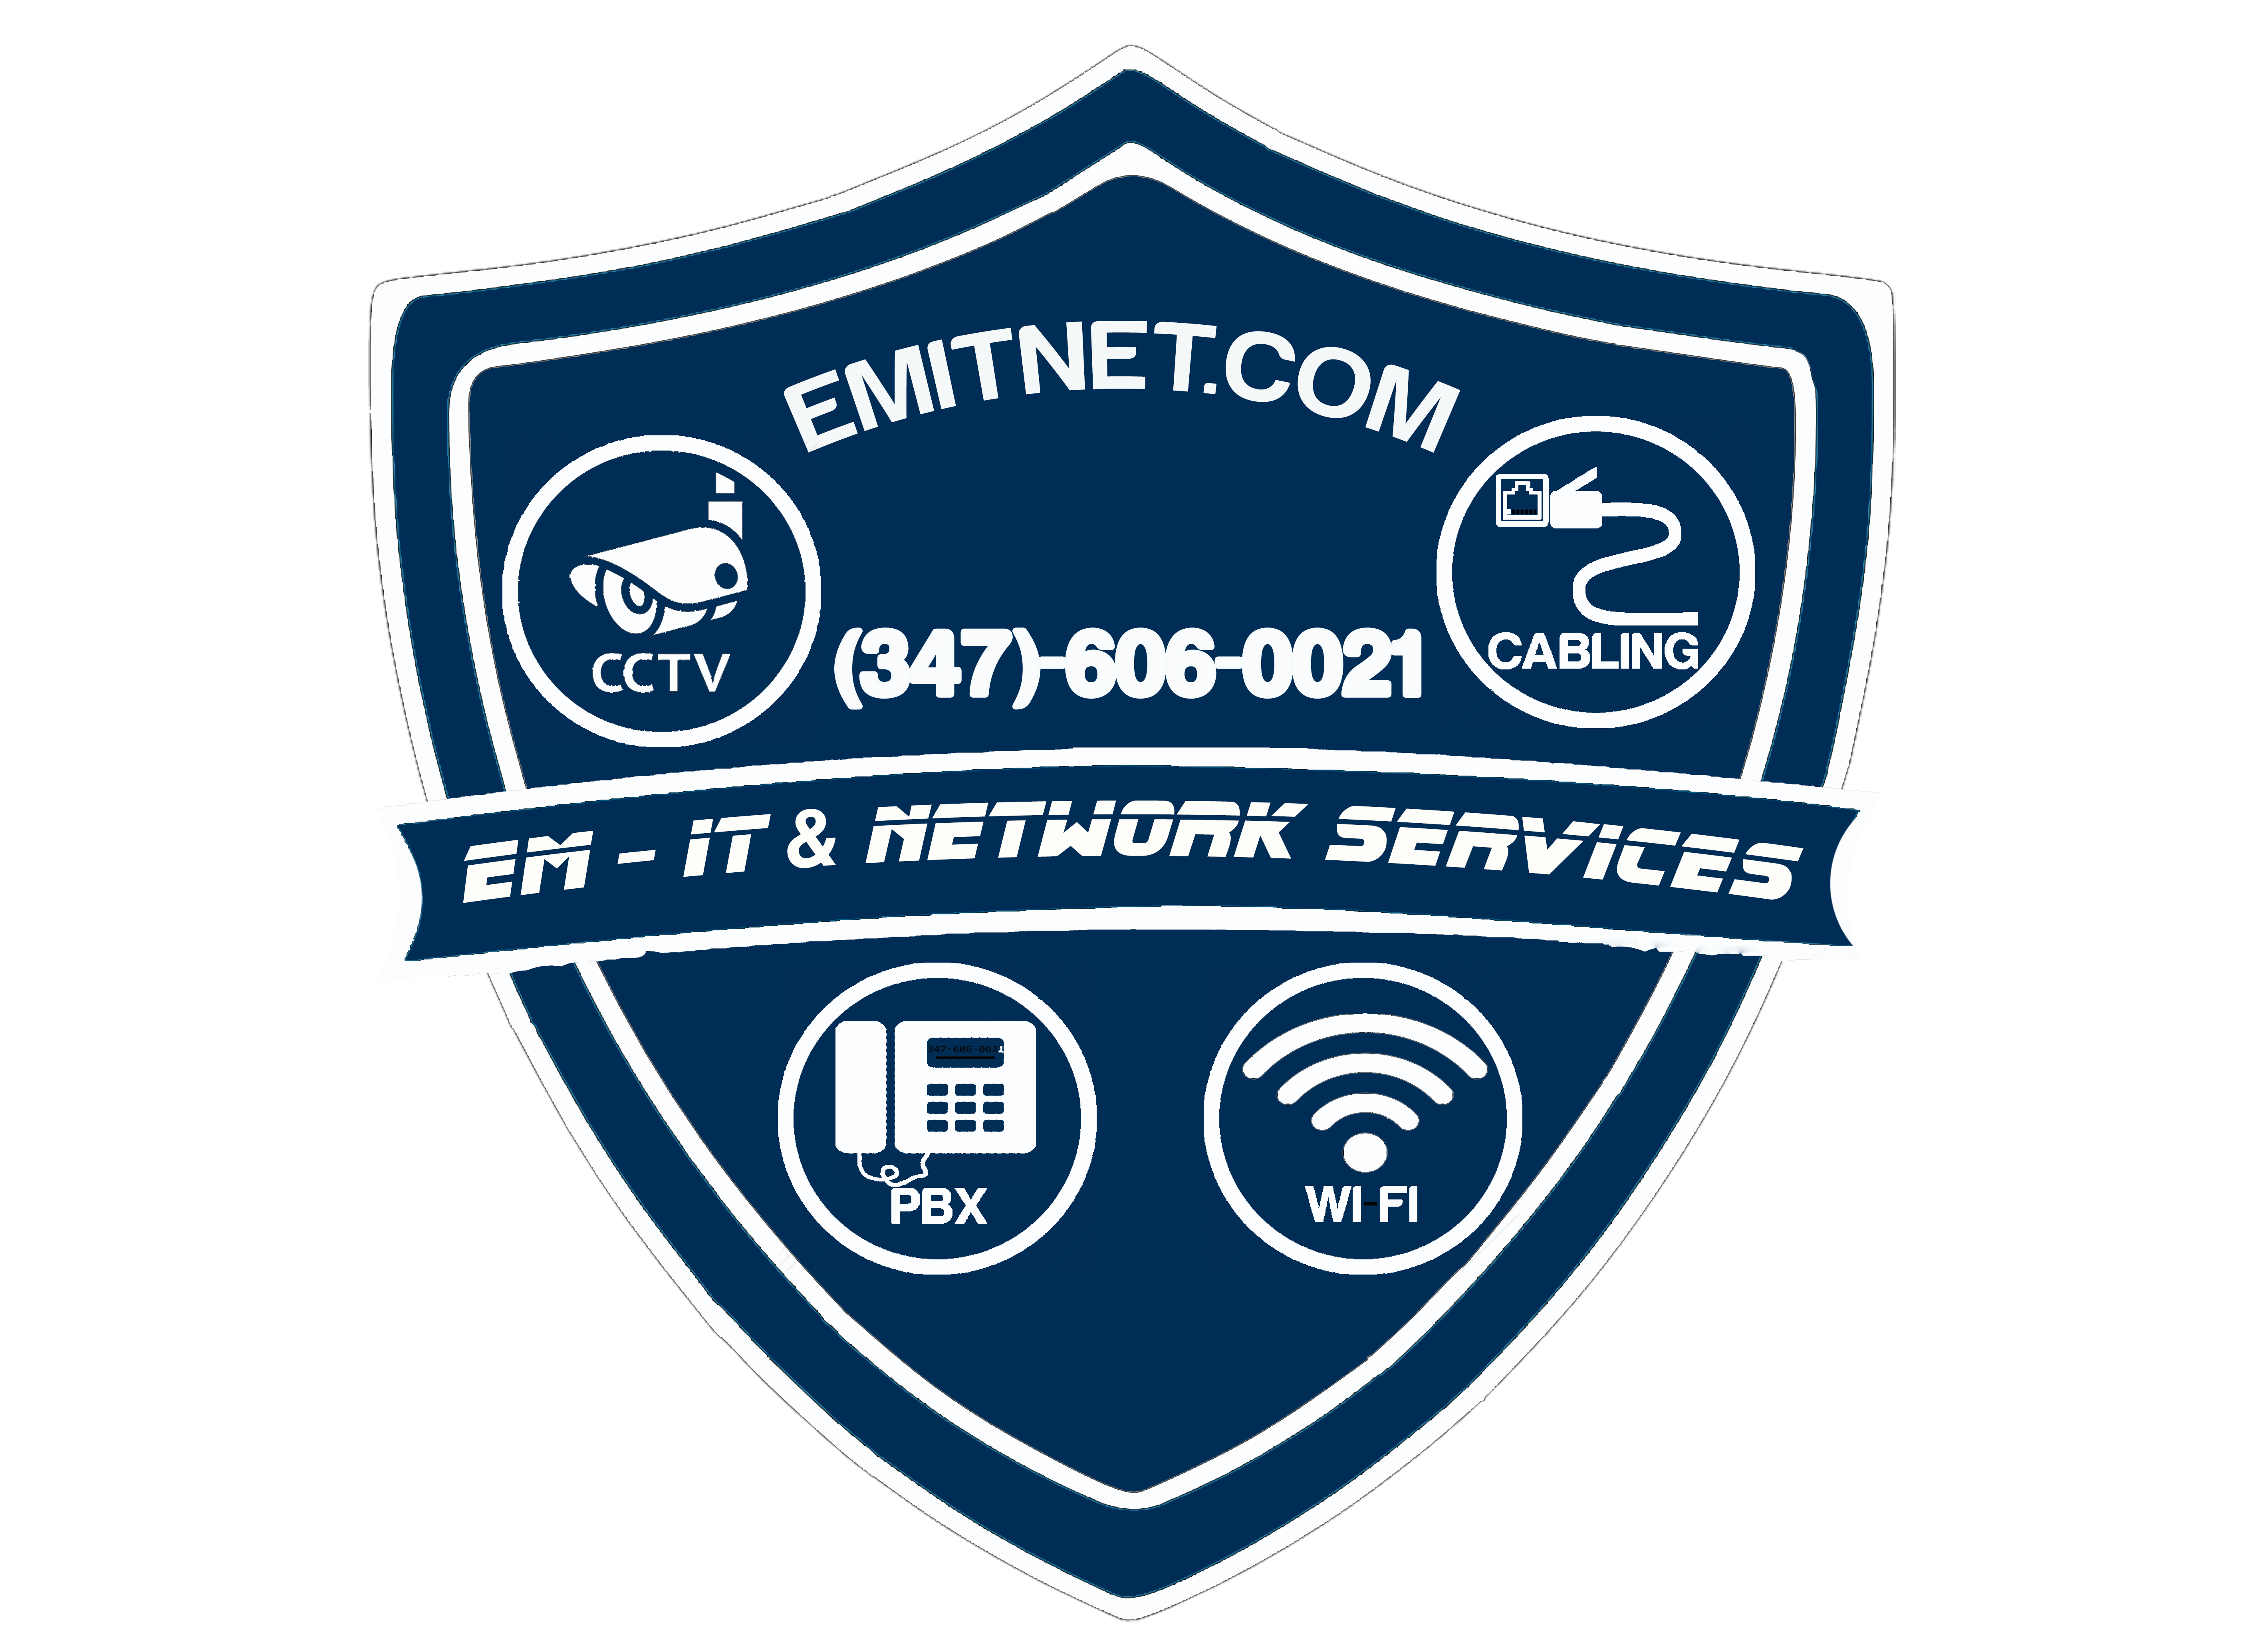 Em It Network Services Structured Cabling Cctv Pbx Wifi Contact Us To Learn More About Our Wiring Provider Ny